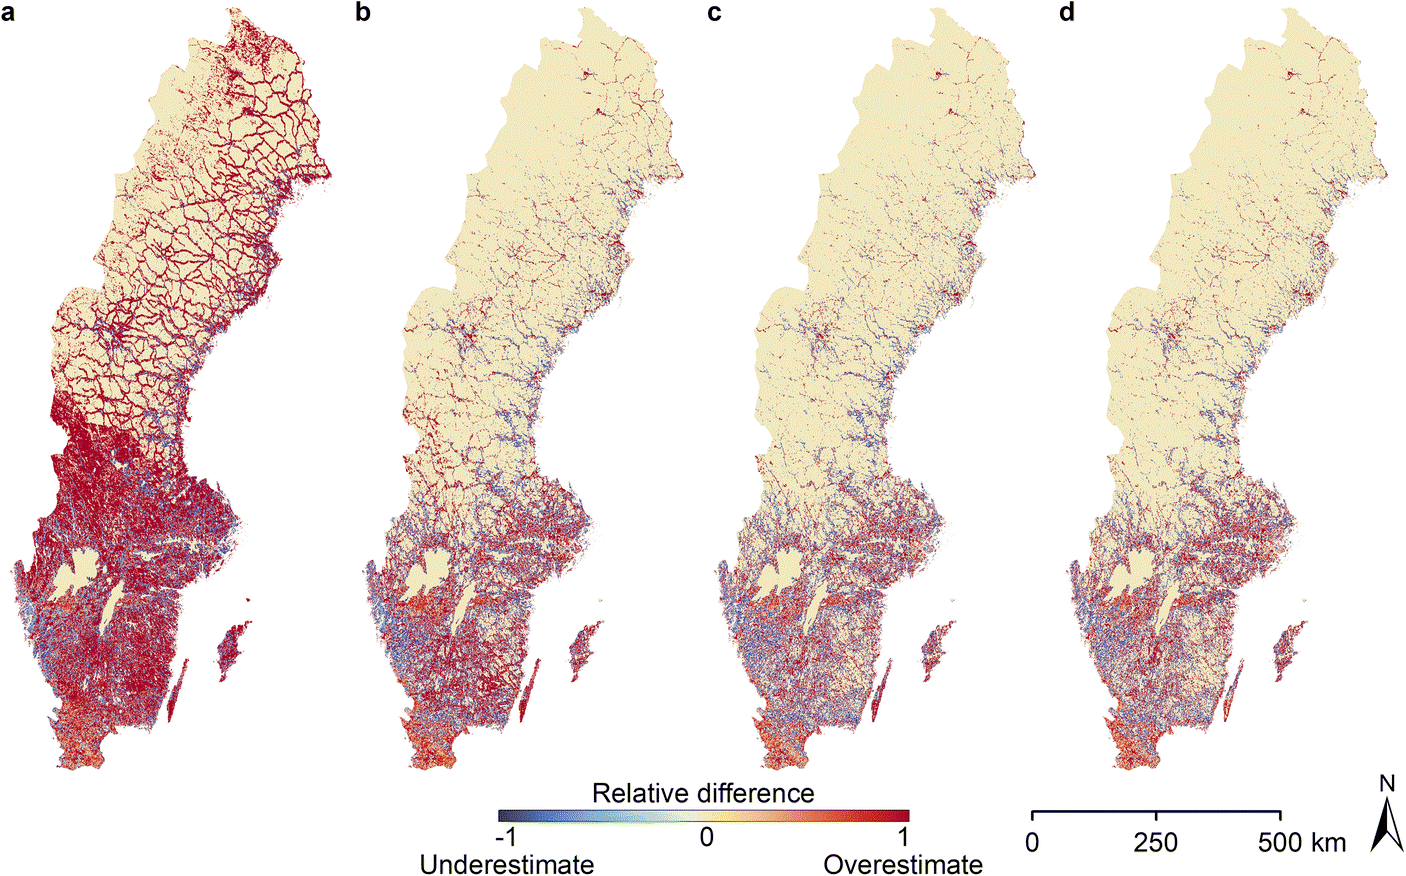 Relative difference between LandScan estimated population and the known population. a LandScan 2000, b LandScan 2005, c LandScan 2010, d LandScan 2015